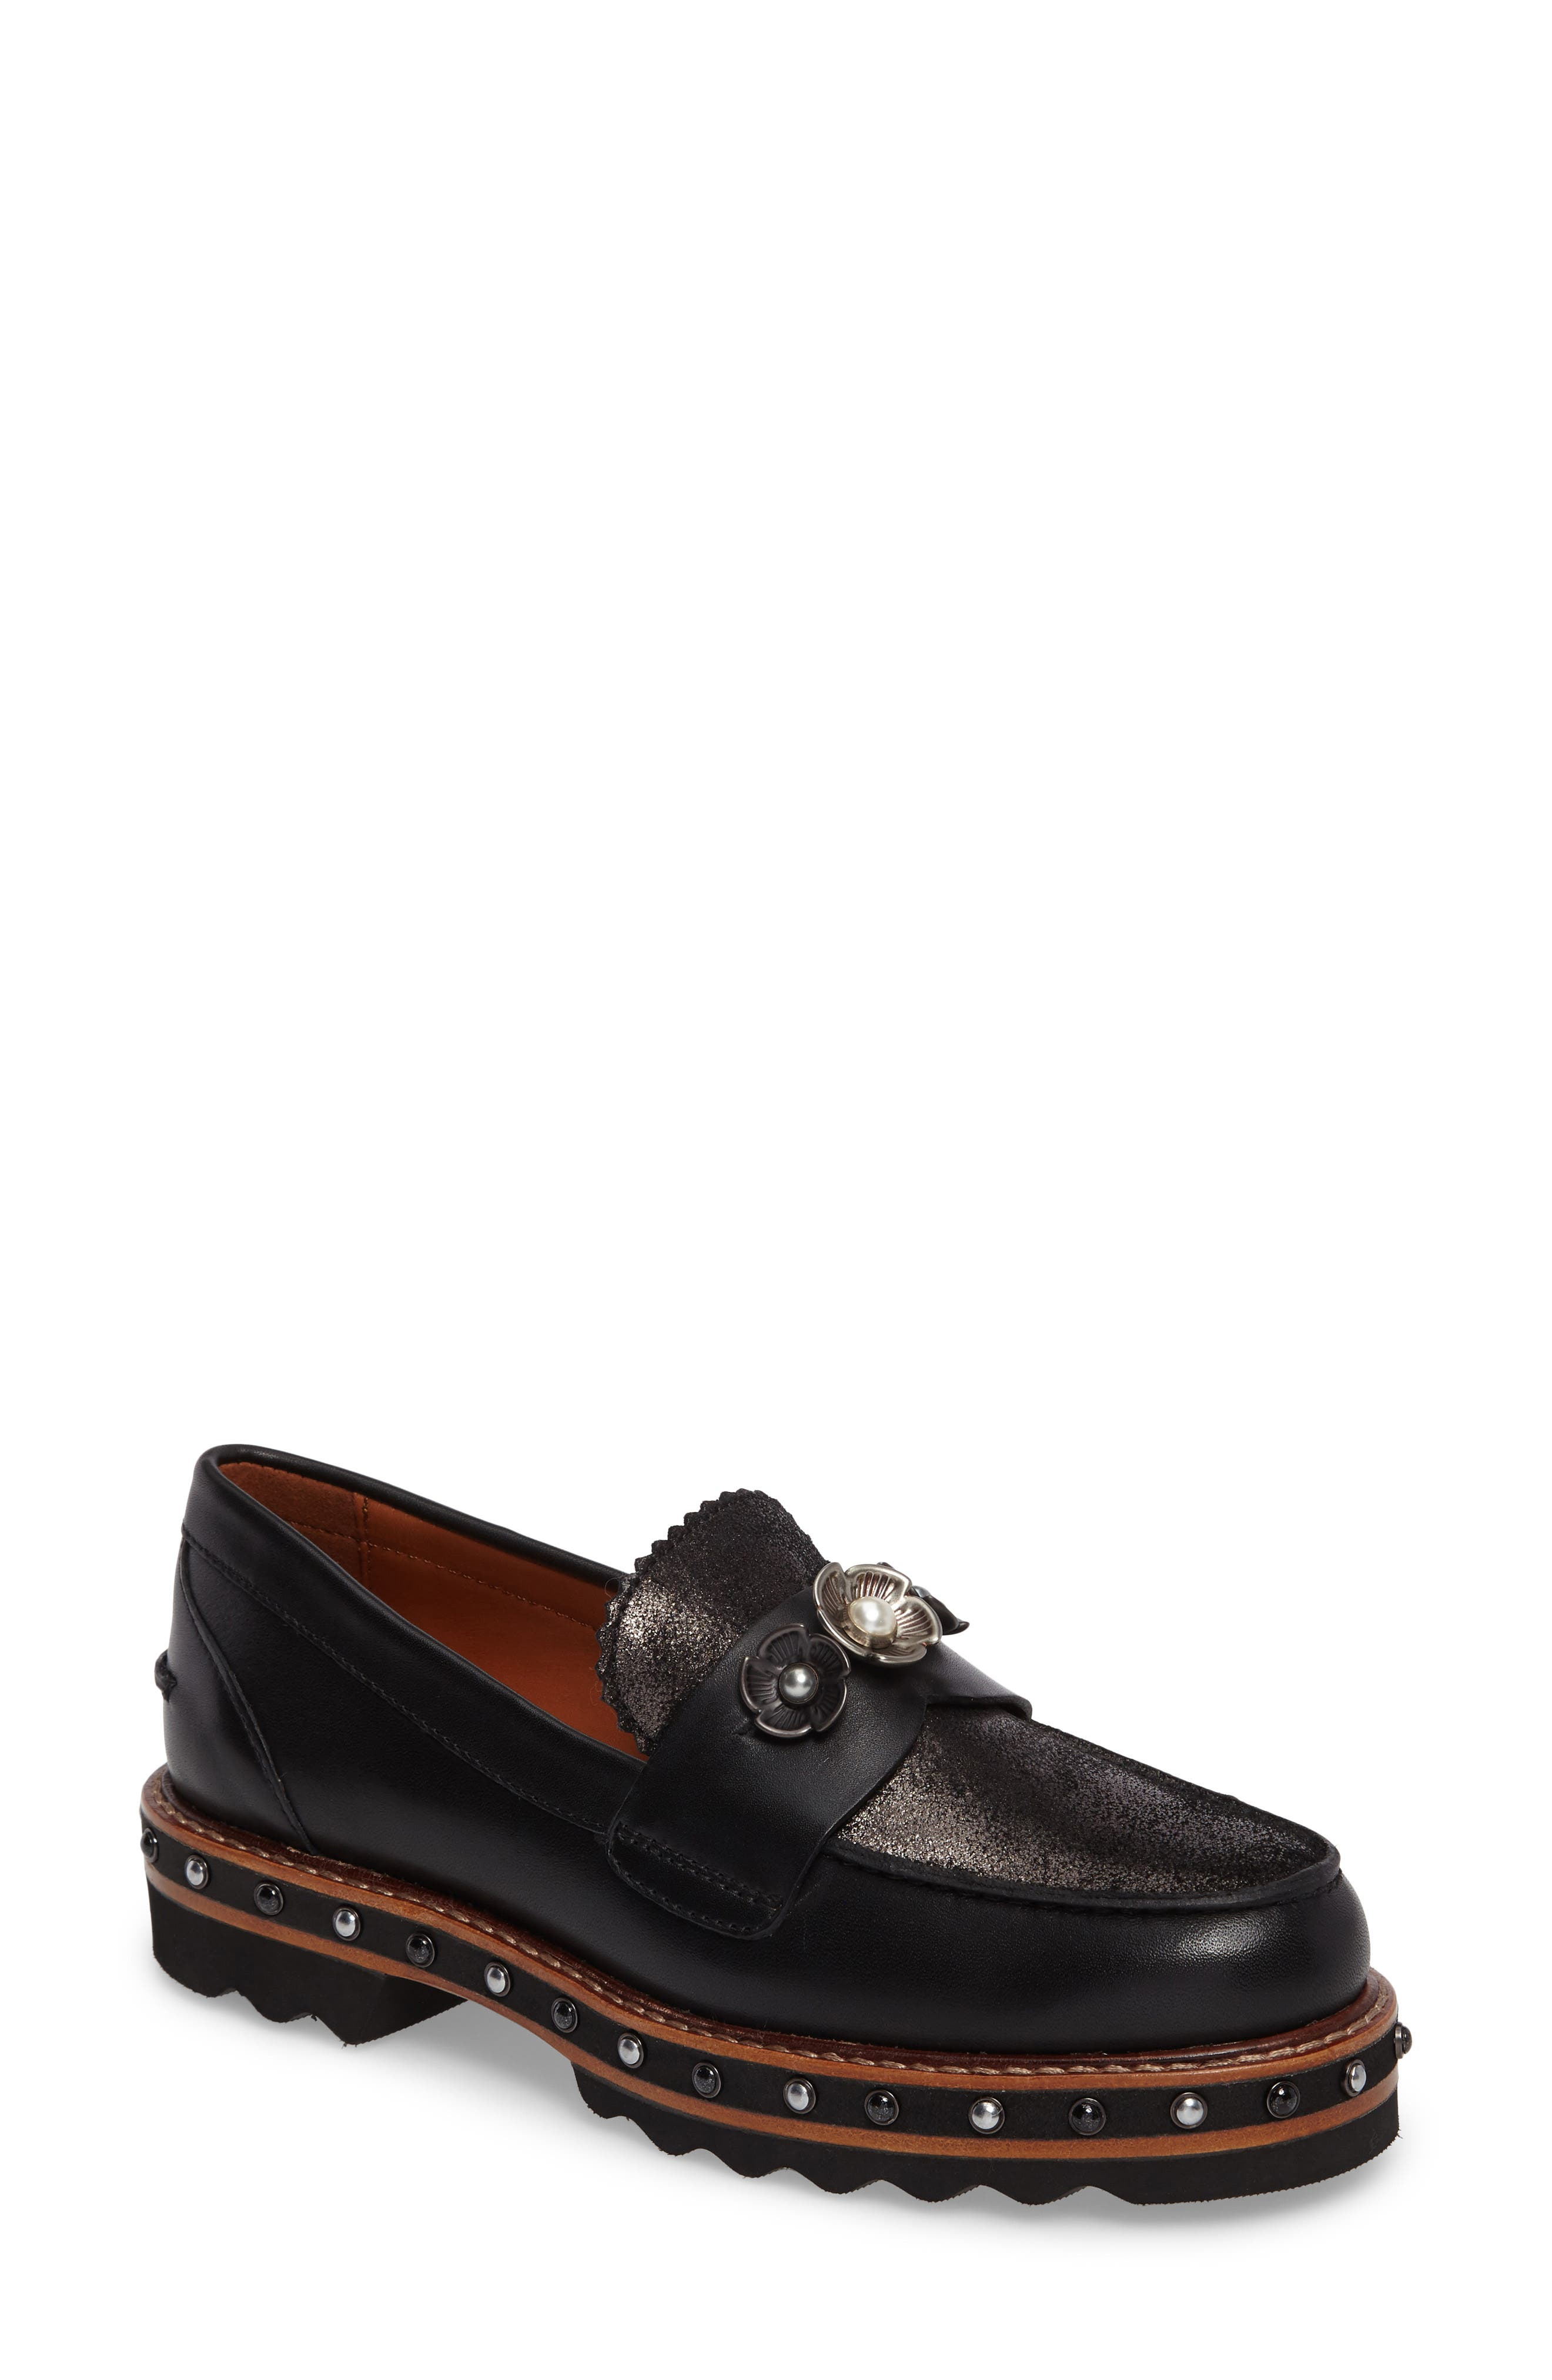 Alternate Image 1 Selected - Coach Lenox Loafer (Women)